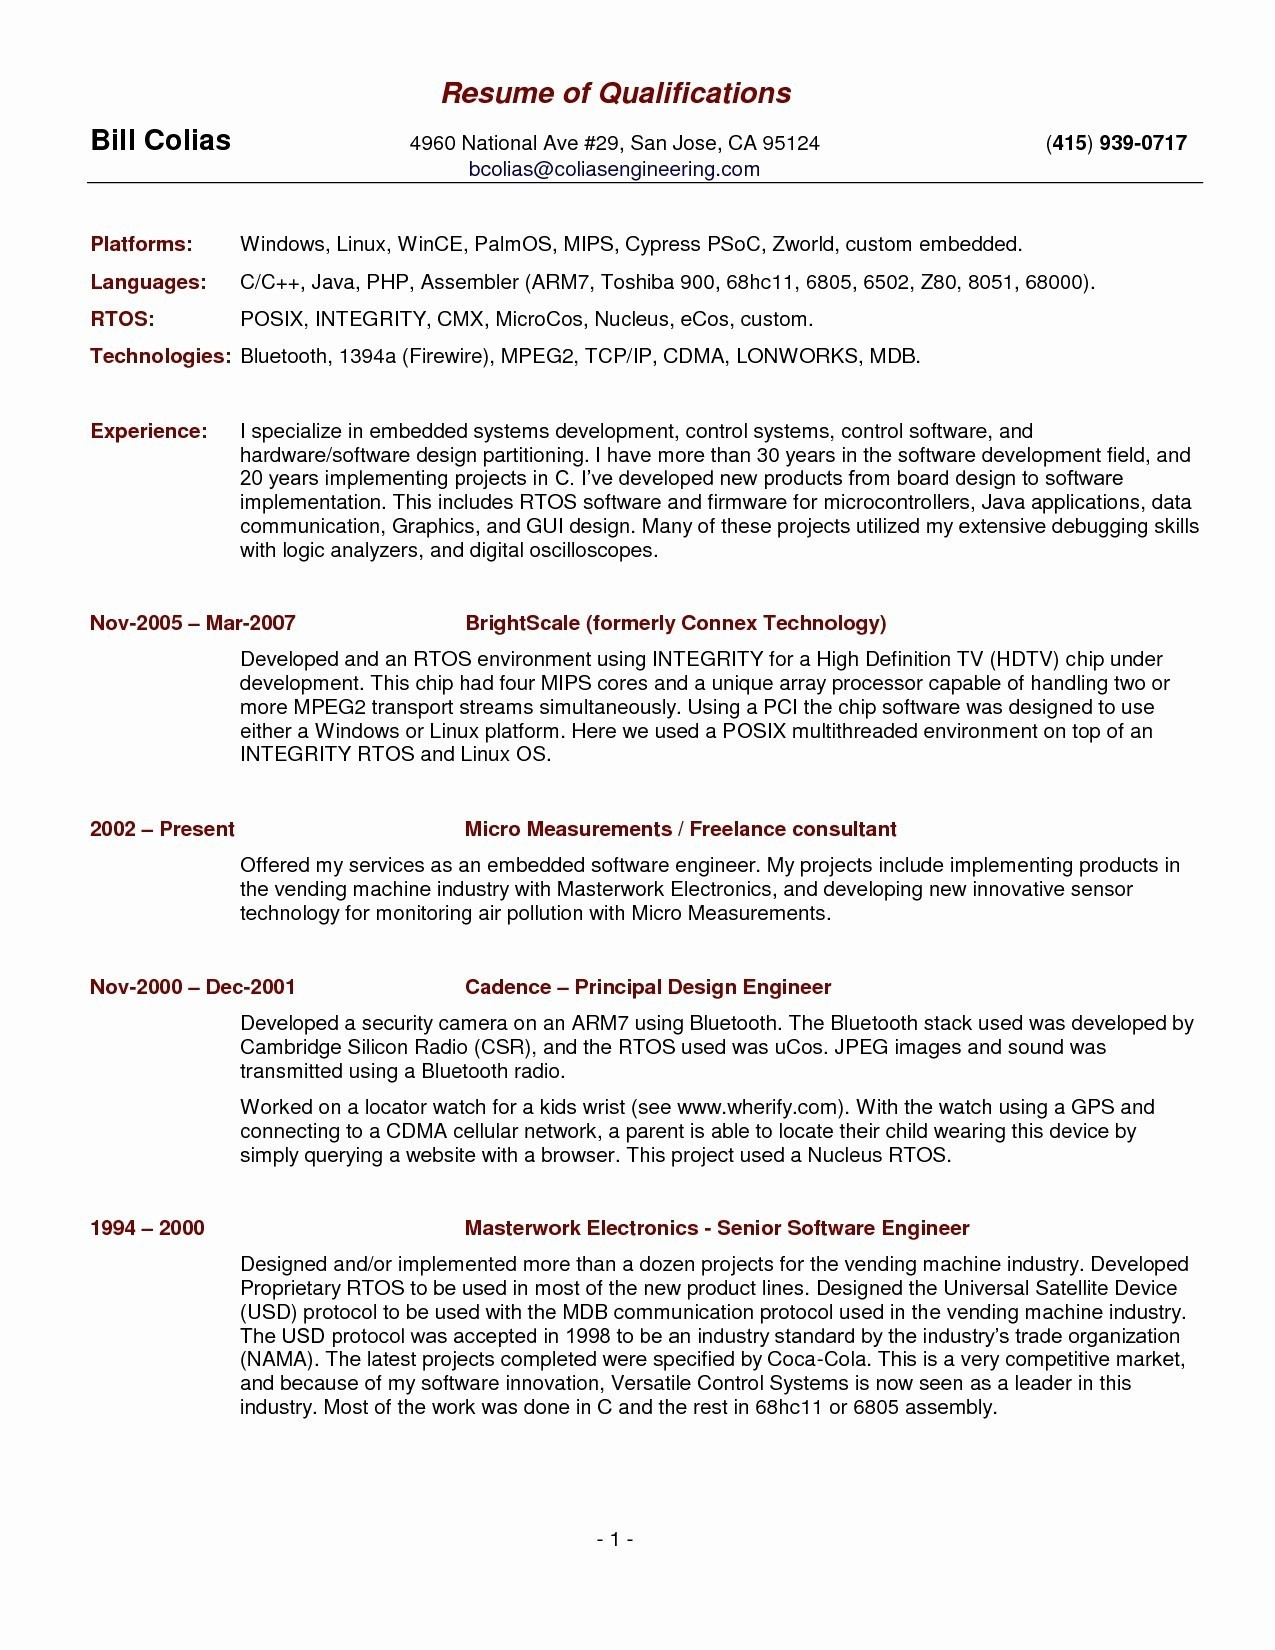 Resume Builders for Veterans - Resume Builder for Veterans Best 19 Awesome Military to Civilian